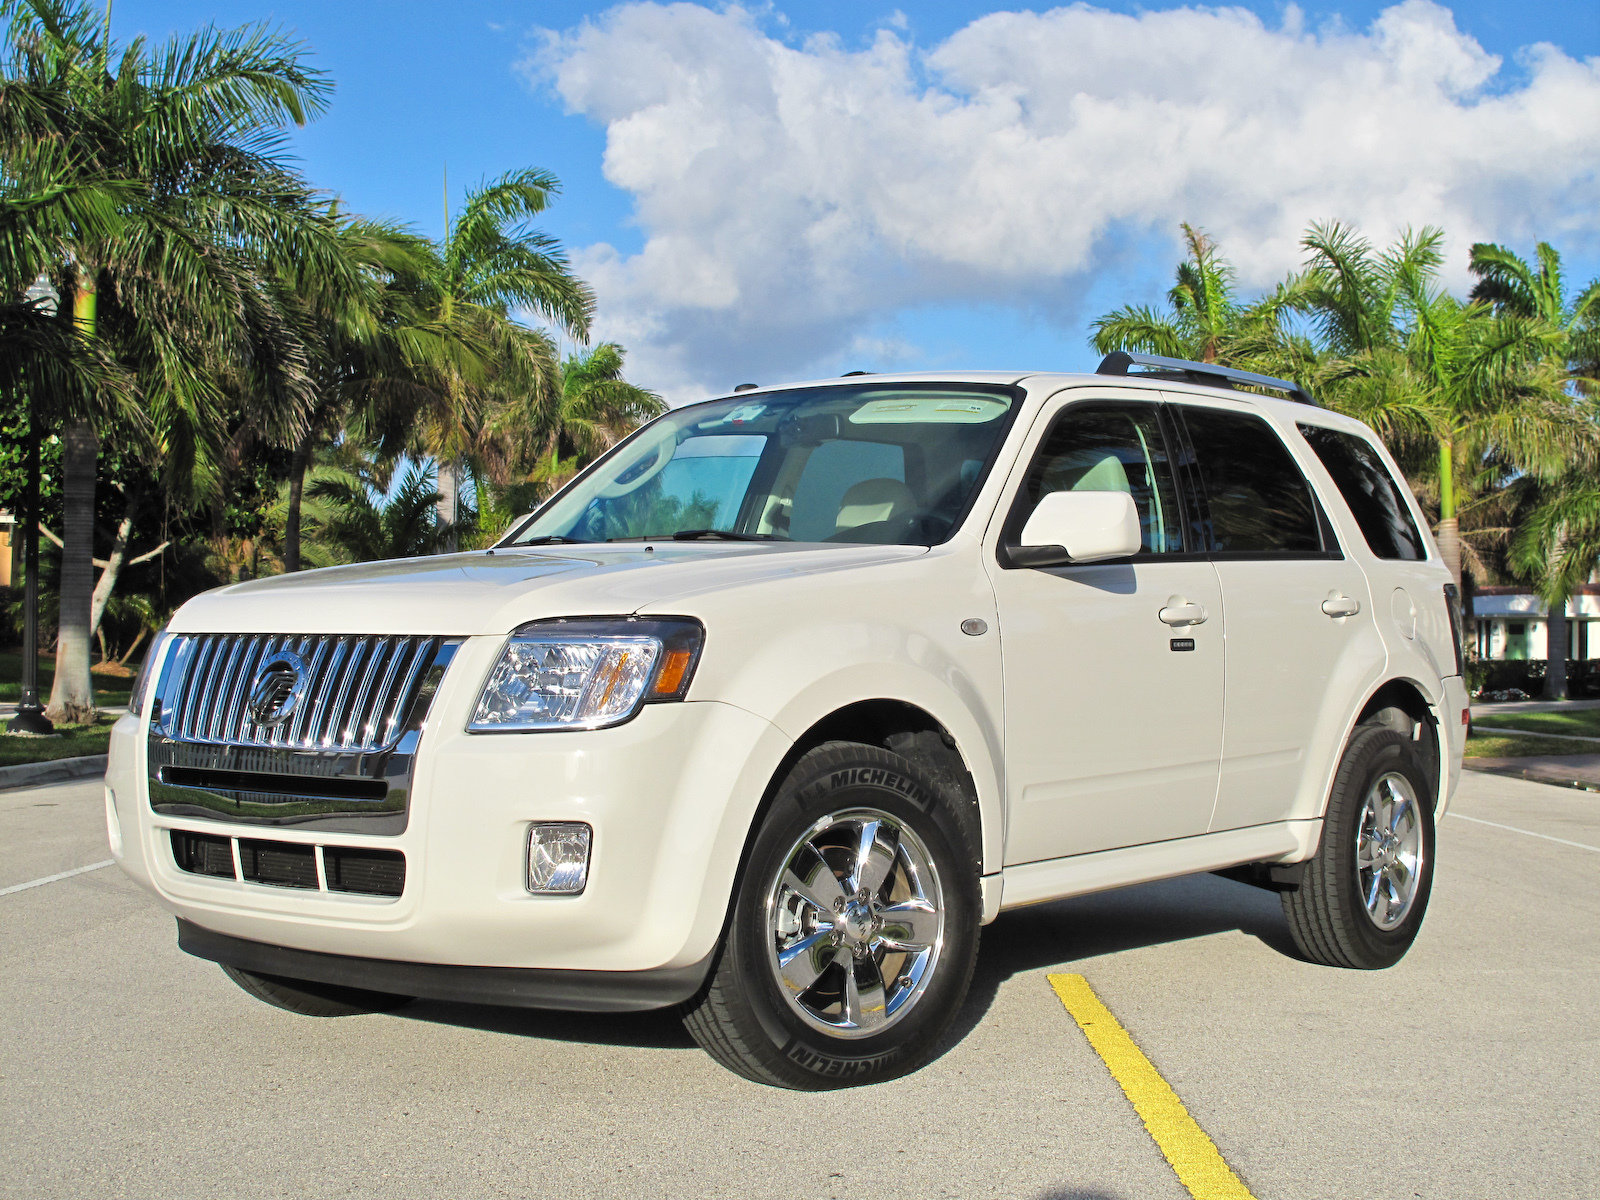 Mariner Car: 2009 Mercury Mariner VOGA Review